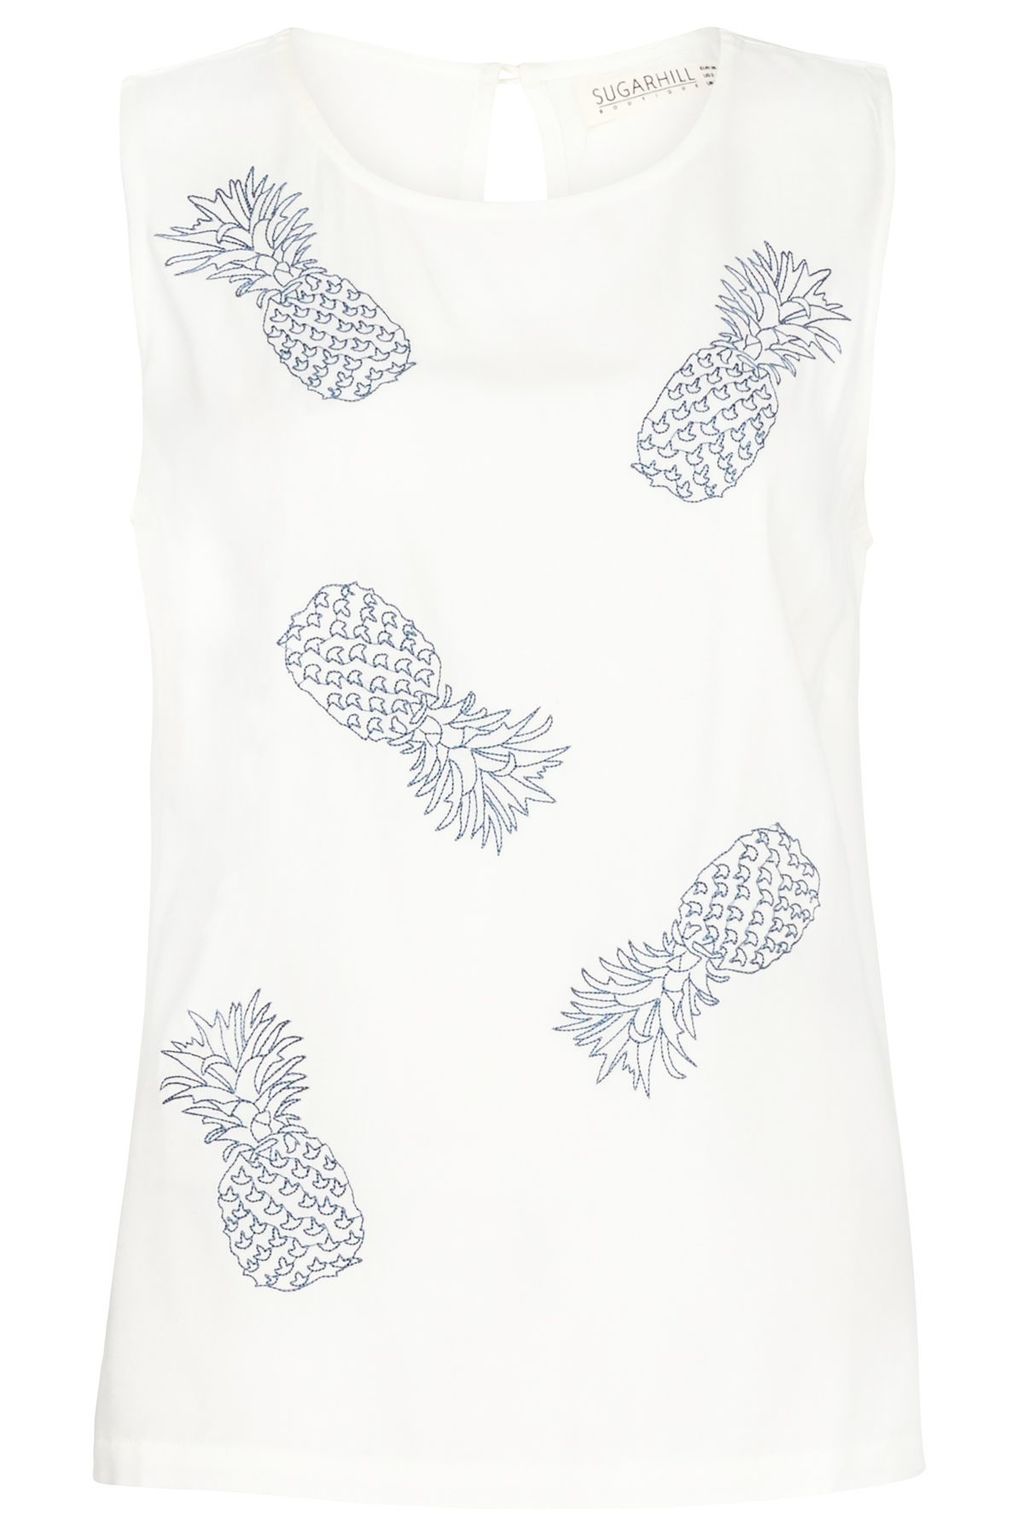 Carly Pineapple Cutwork Top, Multi Coloured - neckline: round neck; sleeve style: sleeveless; predominant colour: ivory/cream; secondary colour: light grey; occasions: casual; length: standard; style: top; fibres: viscose/rayon - 100%; fit: body skimming; sleeve length: sleeveless; pattern type: fabric; pattern: patterned/print; texture group: jersey - stretchy/drapey; multicoloured: multicoloured; season: s/s 2016